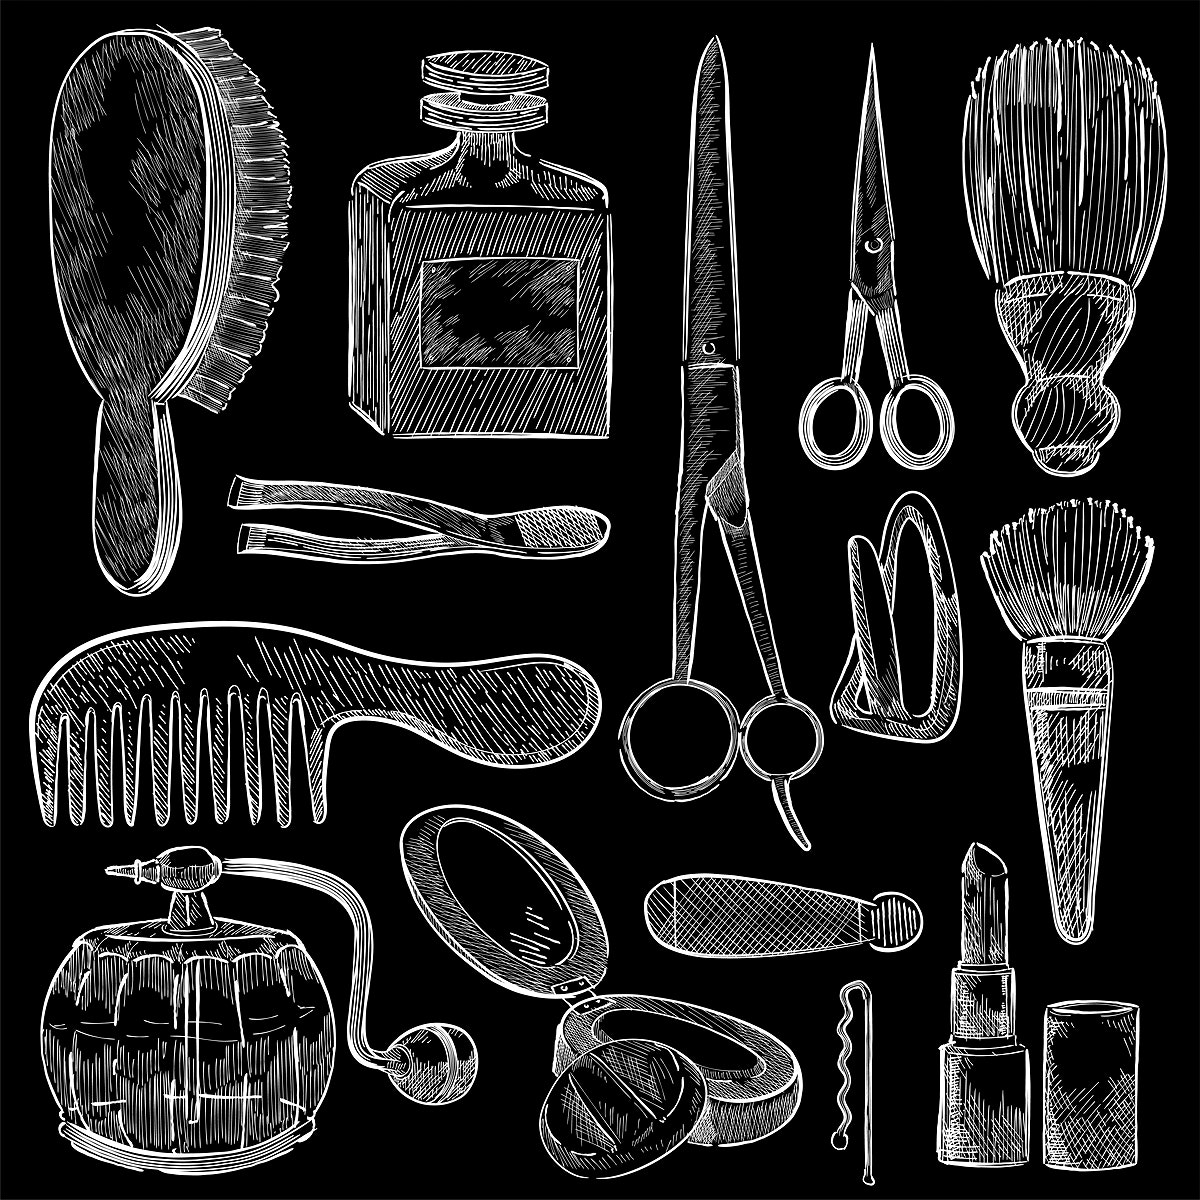 Illustration of a set of beauty tools